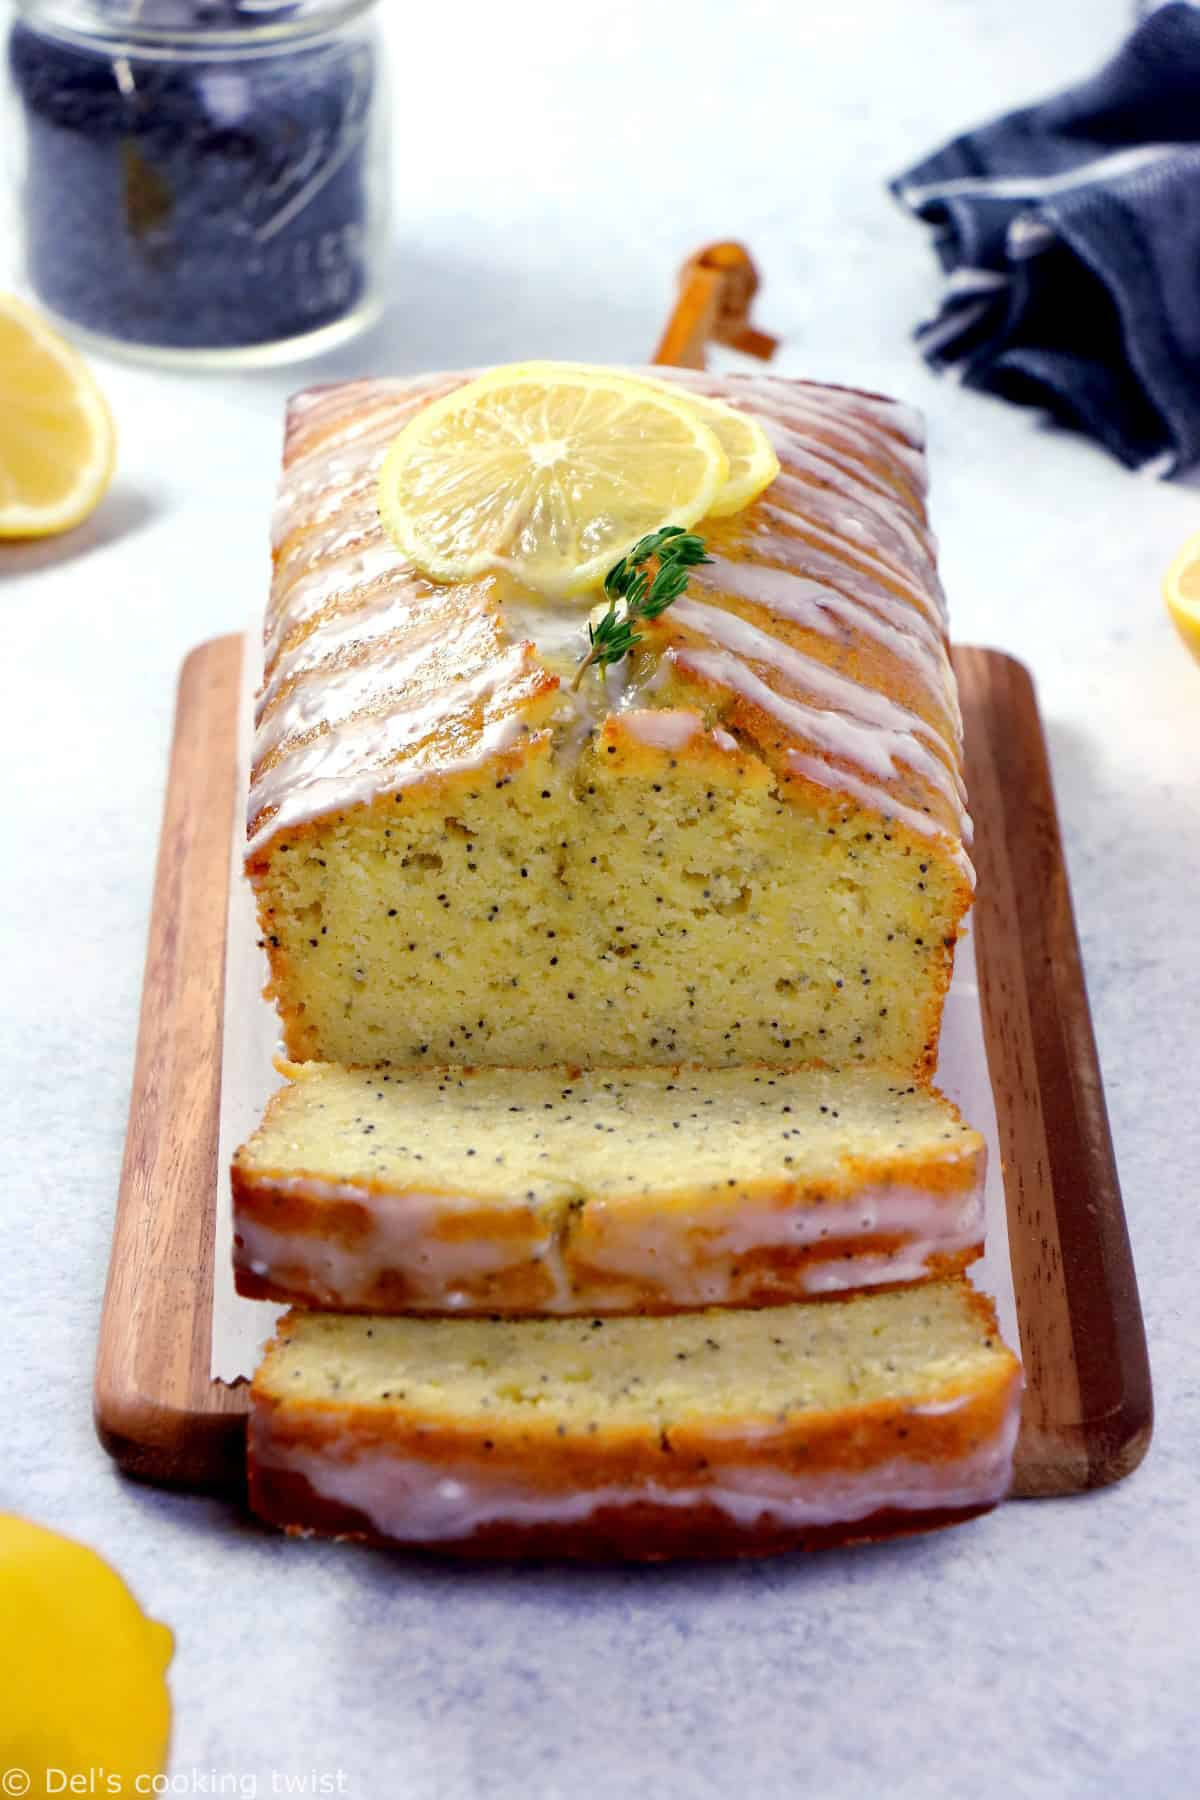 Best Ever Lemon Poppy Seed Loaf is perfectly moist and tender, packed with delicious lemony flavors and sprinkled with just the right amount of poppy seeds.